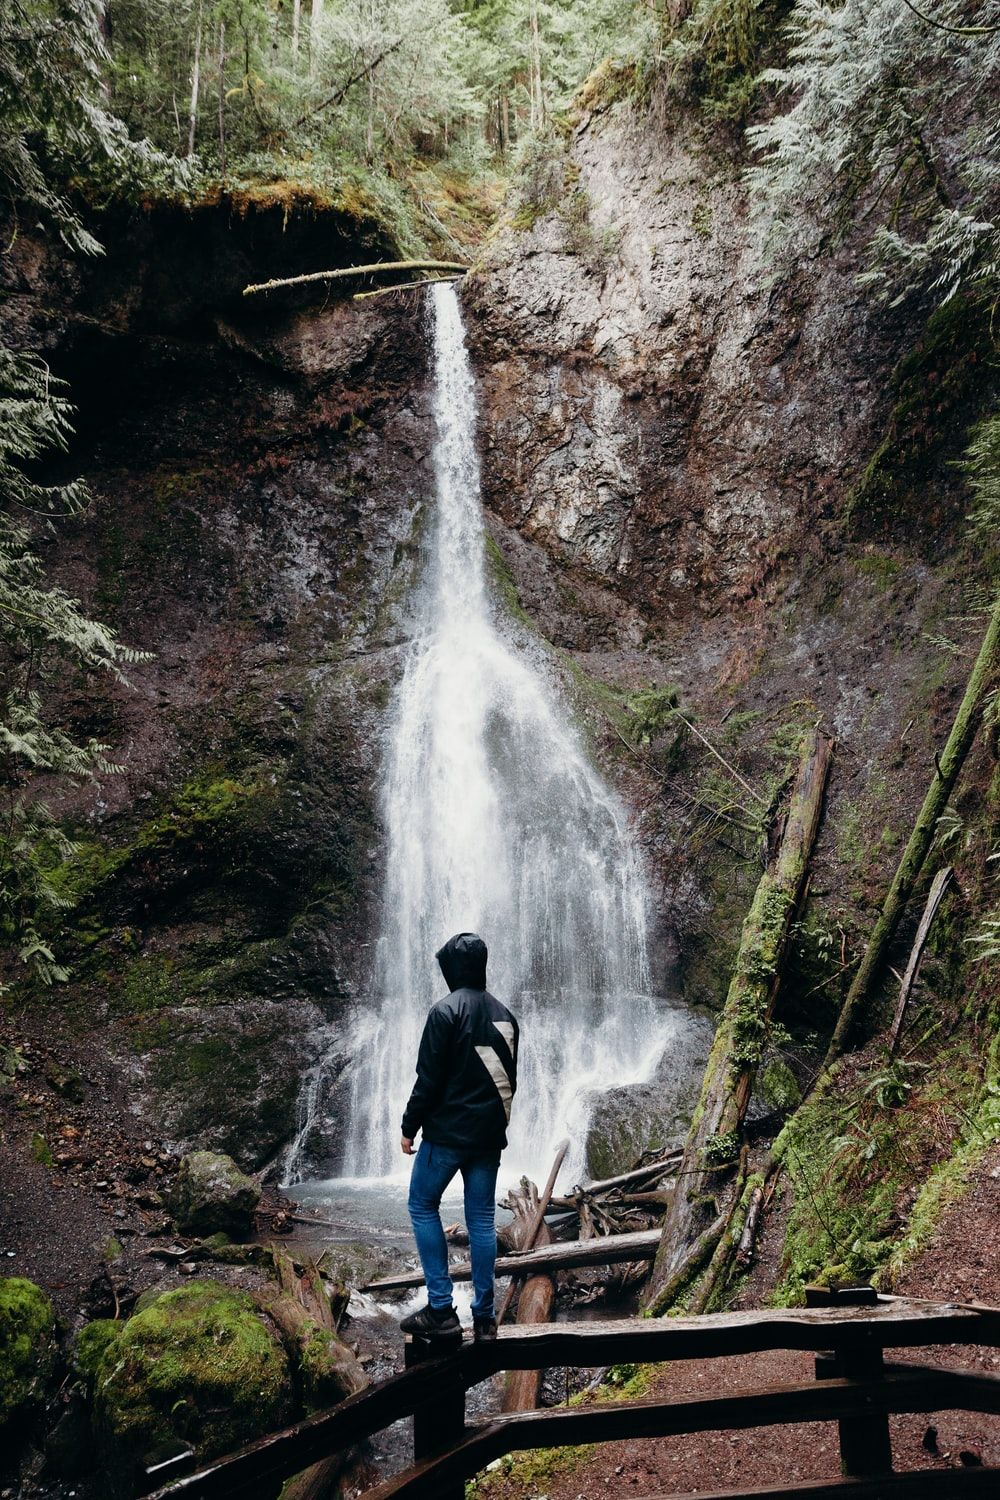 man in black jacket standing in front of waterfalls during daytime